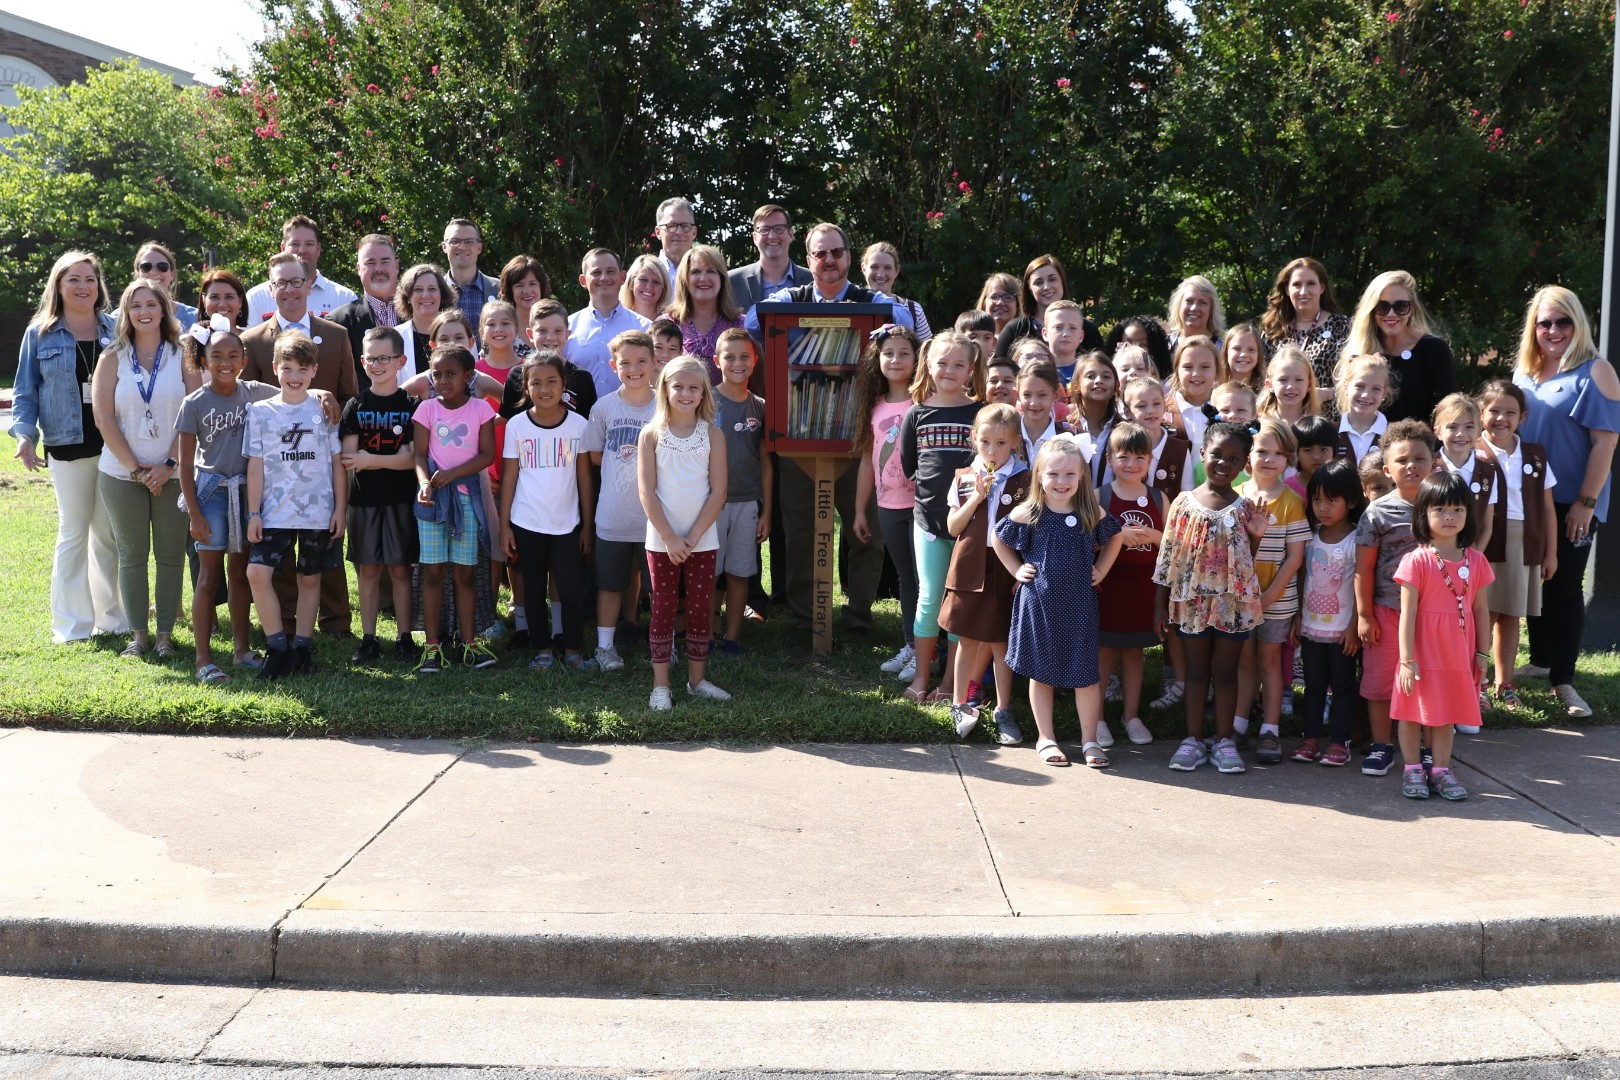 Todd Bol (center), Executive Director of Little Free Library, stands with students, staff members, and distinguished community guests, during the unveiling of the 75,00th Little Free Library on the campus of Jenks East Elementary.